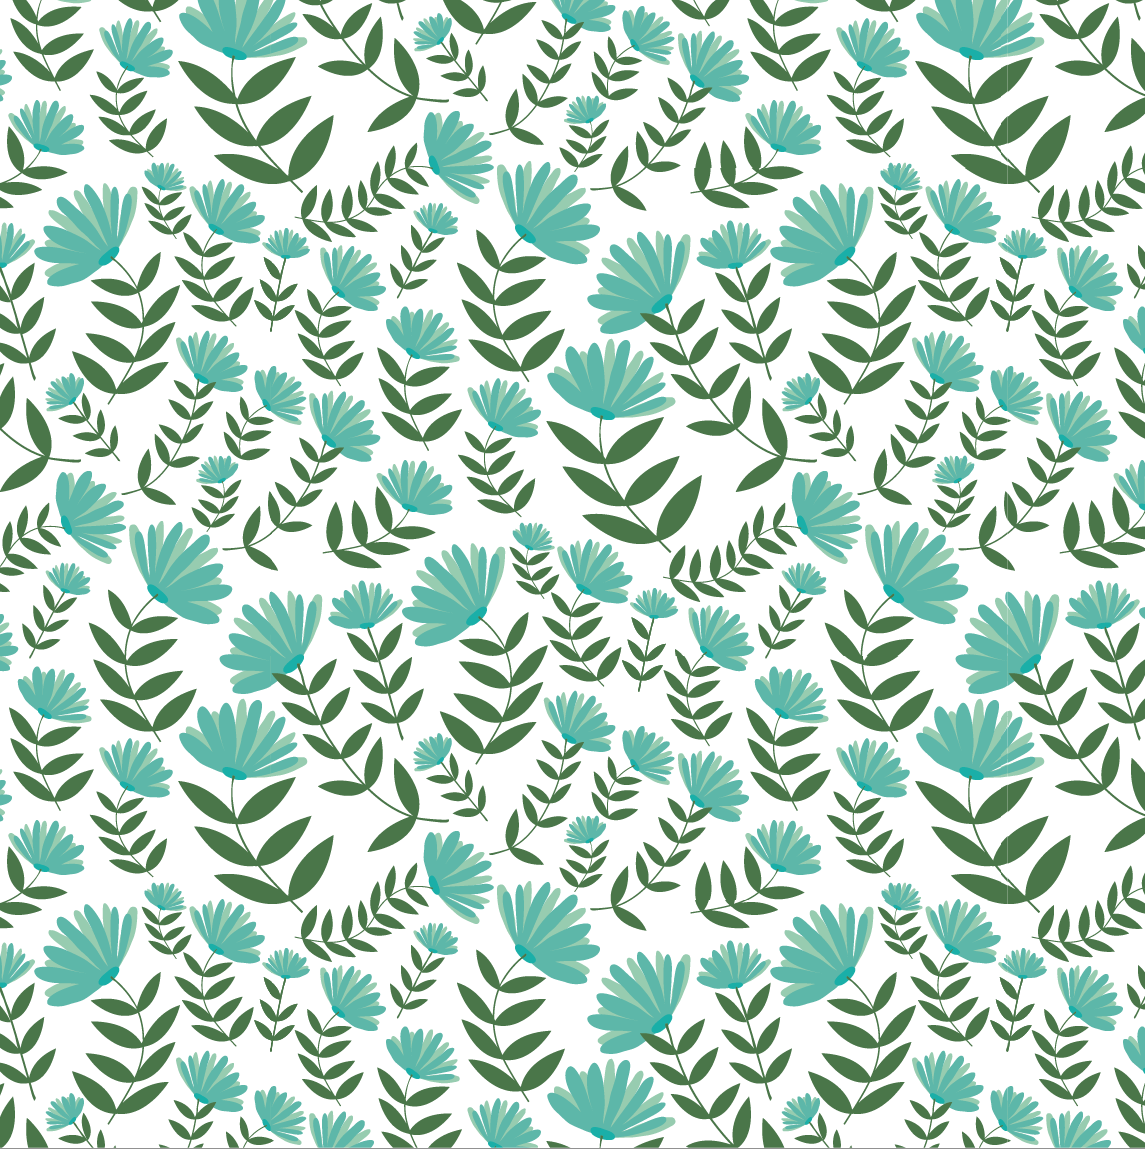 design surface pattern flowers teal green nonna design illustration